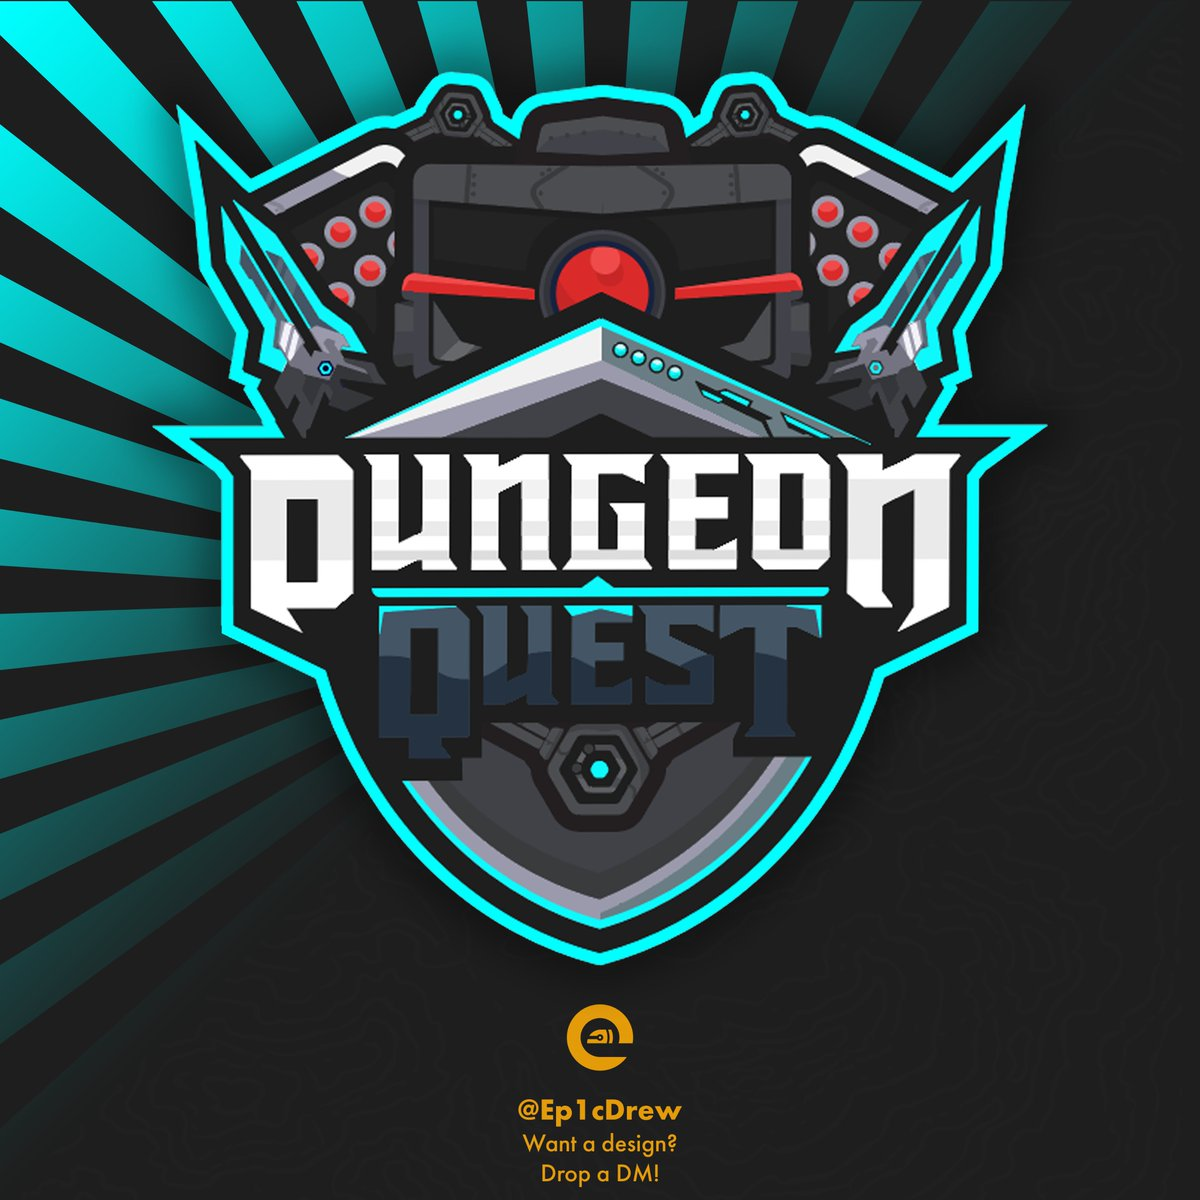 Ep1cdrew On Twitter Beep Boop Commission Logo For The Game